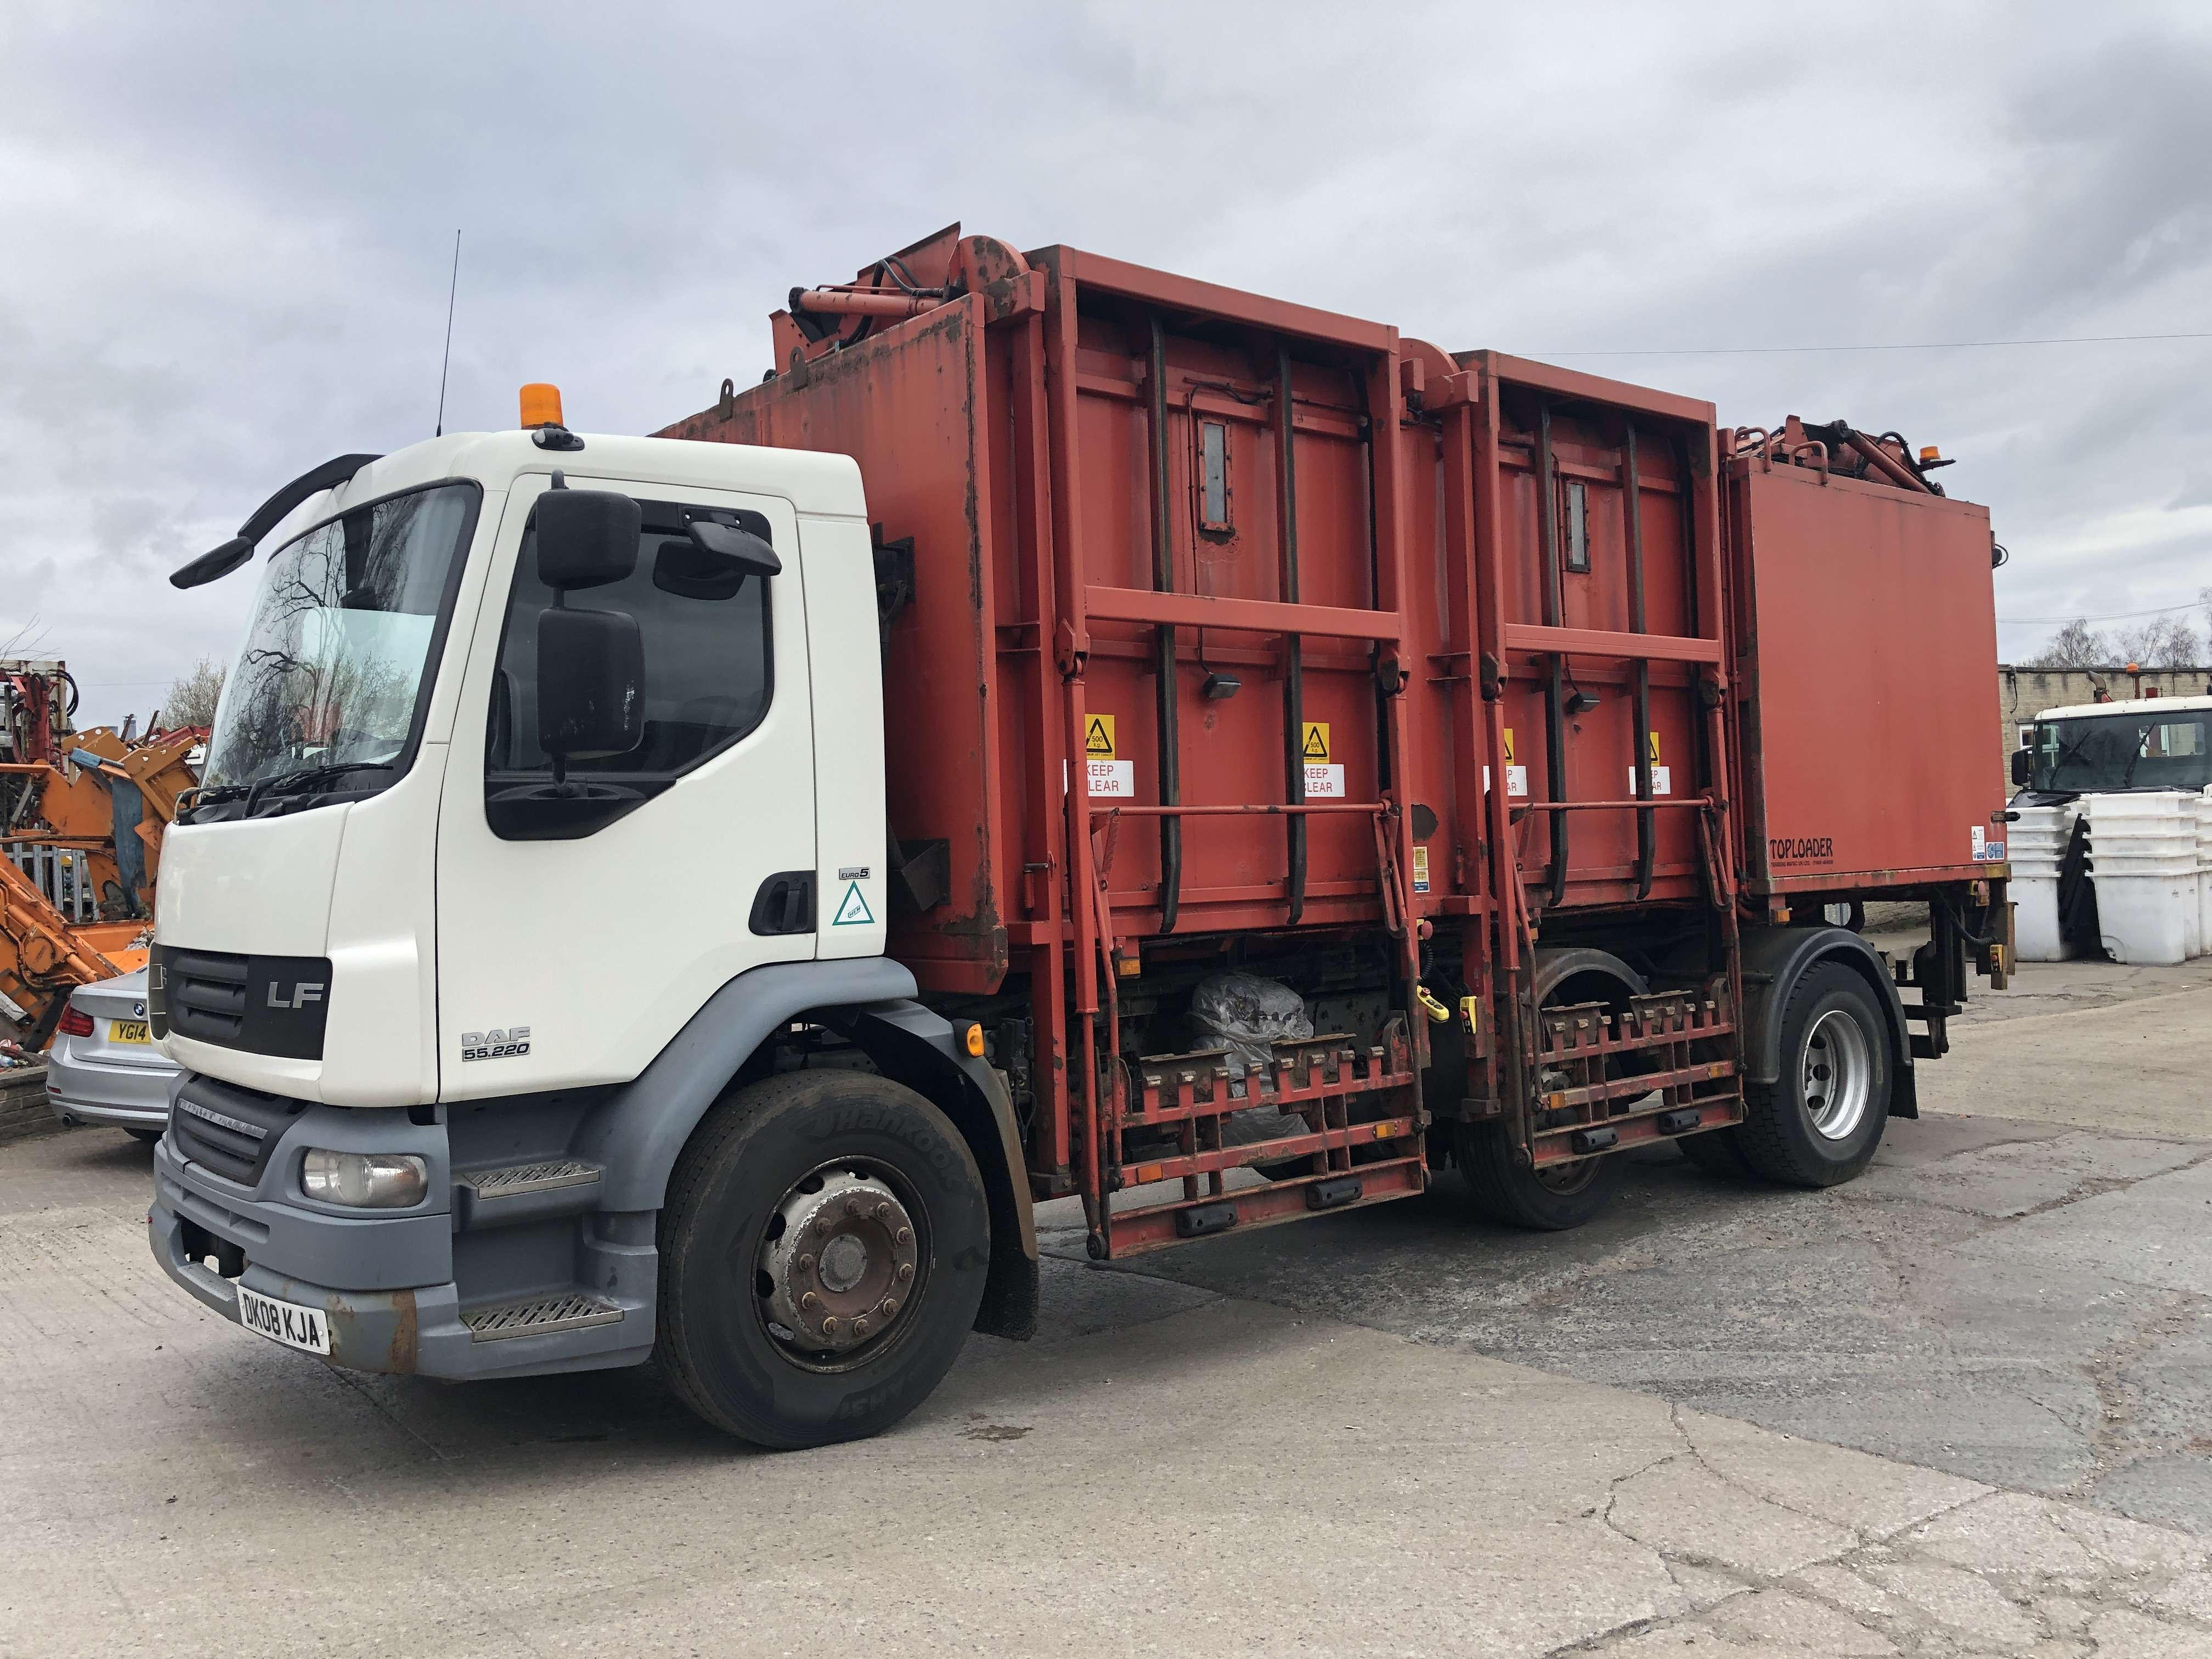 2008 DAF LF45.220 toploader refuse truck for sale 1